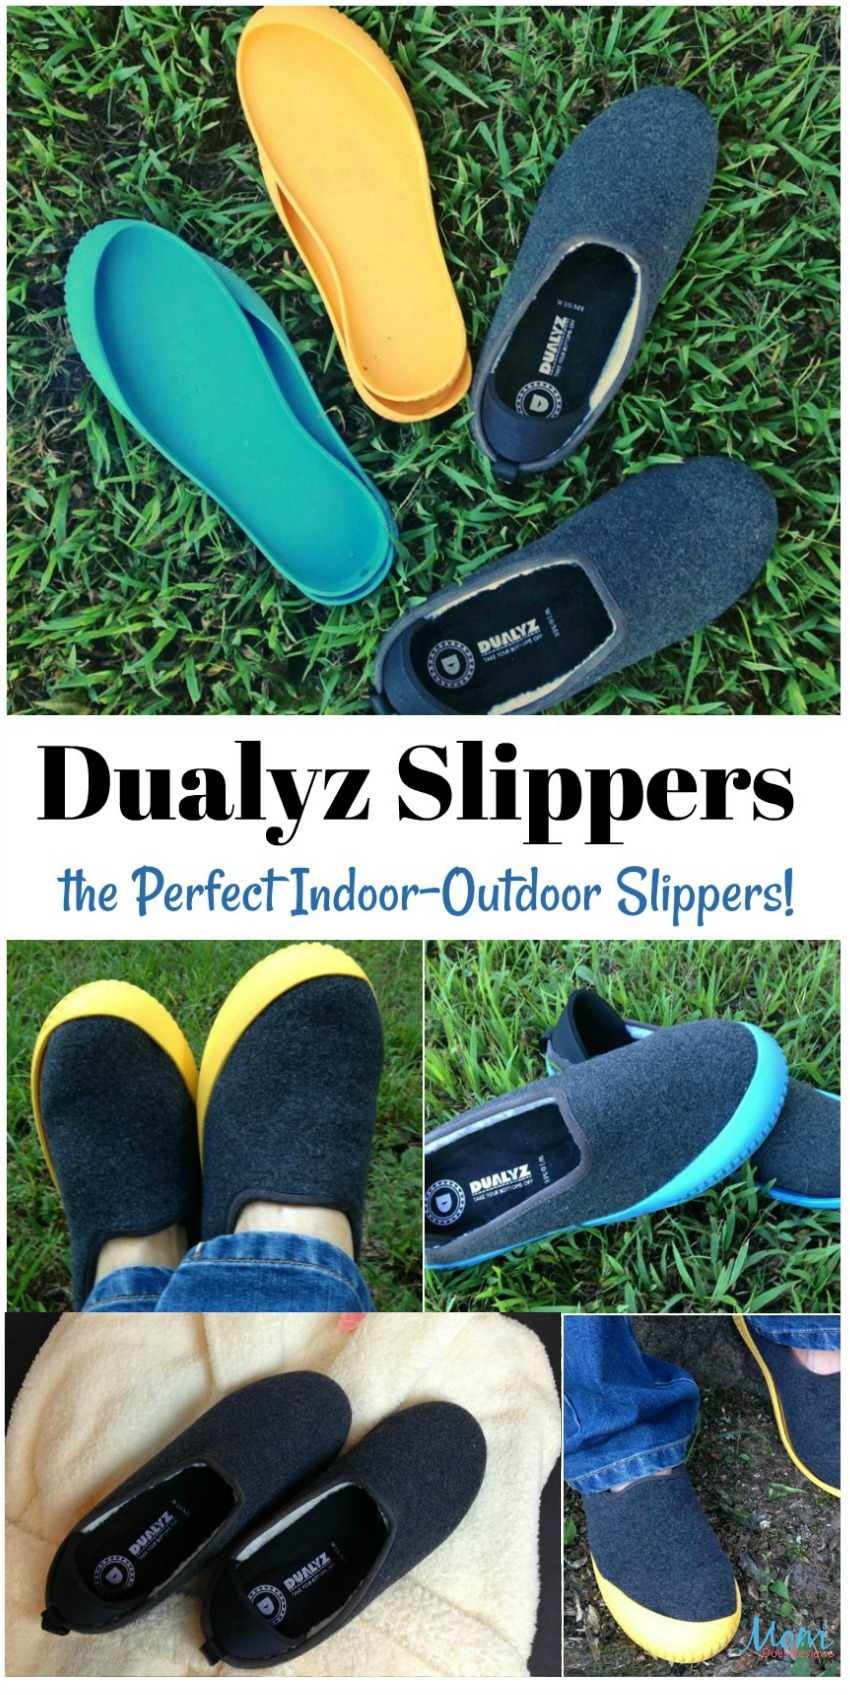 Dualyz Slippers are the Perfect Indoor-Outdoor Slipper! #takeyourbottomsoff